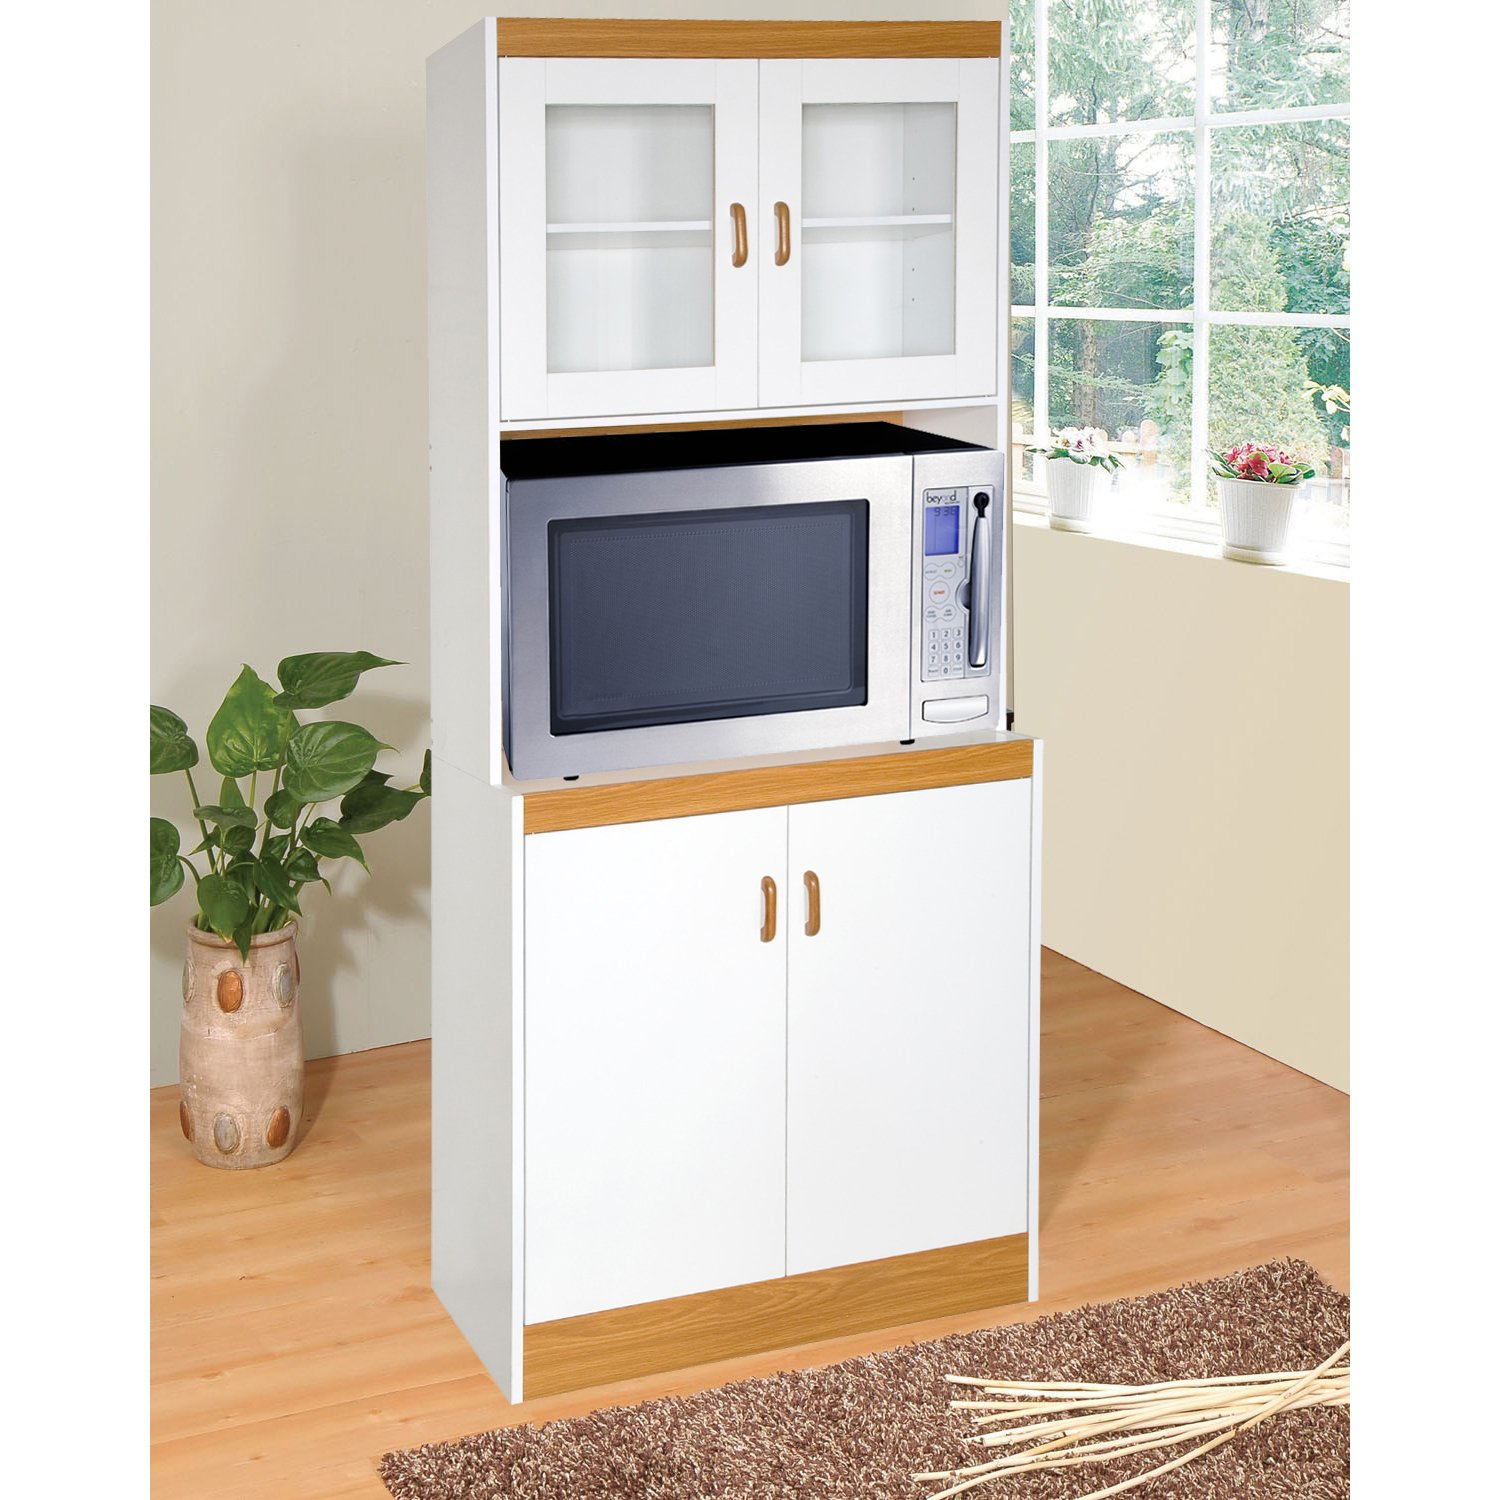 Tall Kitchen Cabinets Pantry Part - 36: Amazon.com - Home Source Industries - 153BRD - Tall Kitchen Microwave Cart  - Cabinets, Shelf And Glass Doors - White With Light Wood Trim - Kitchen  Islands ...